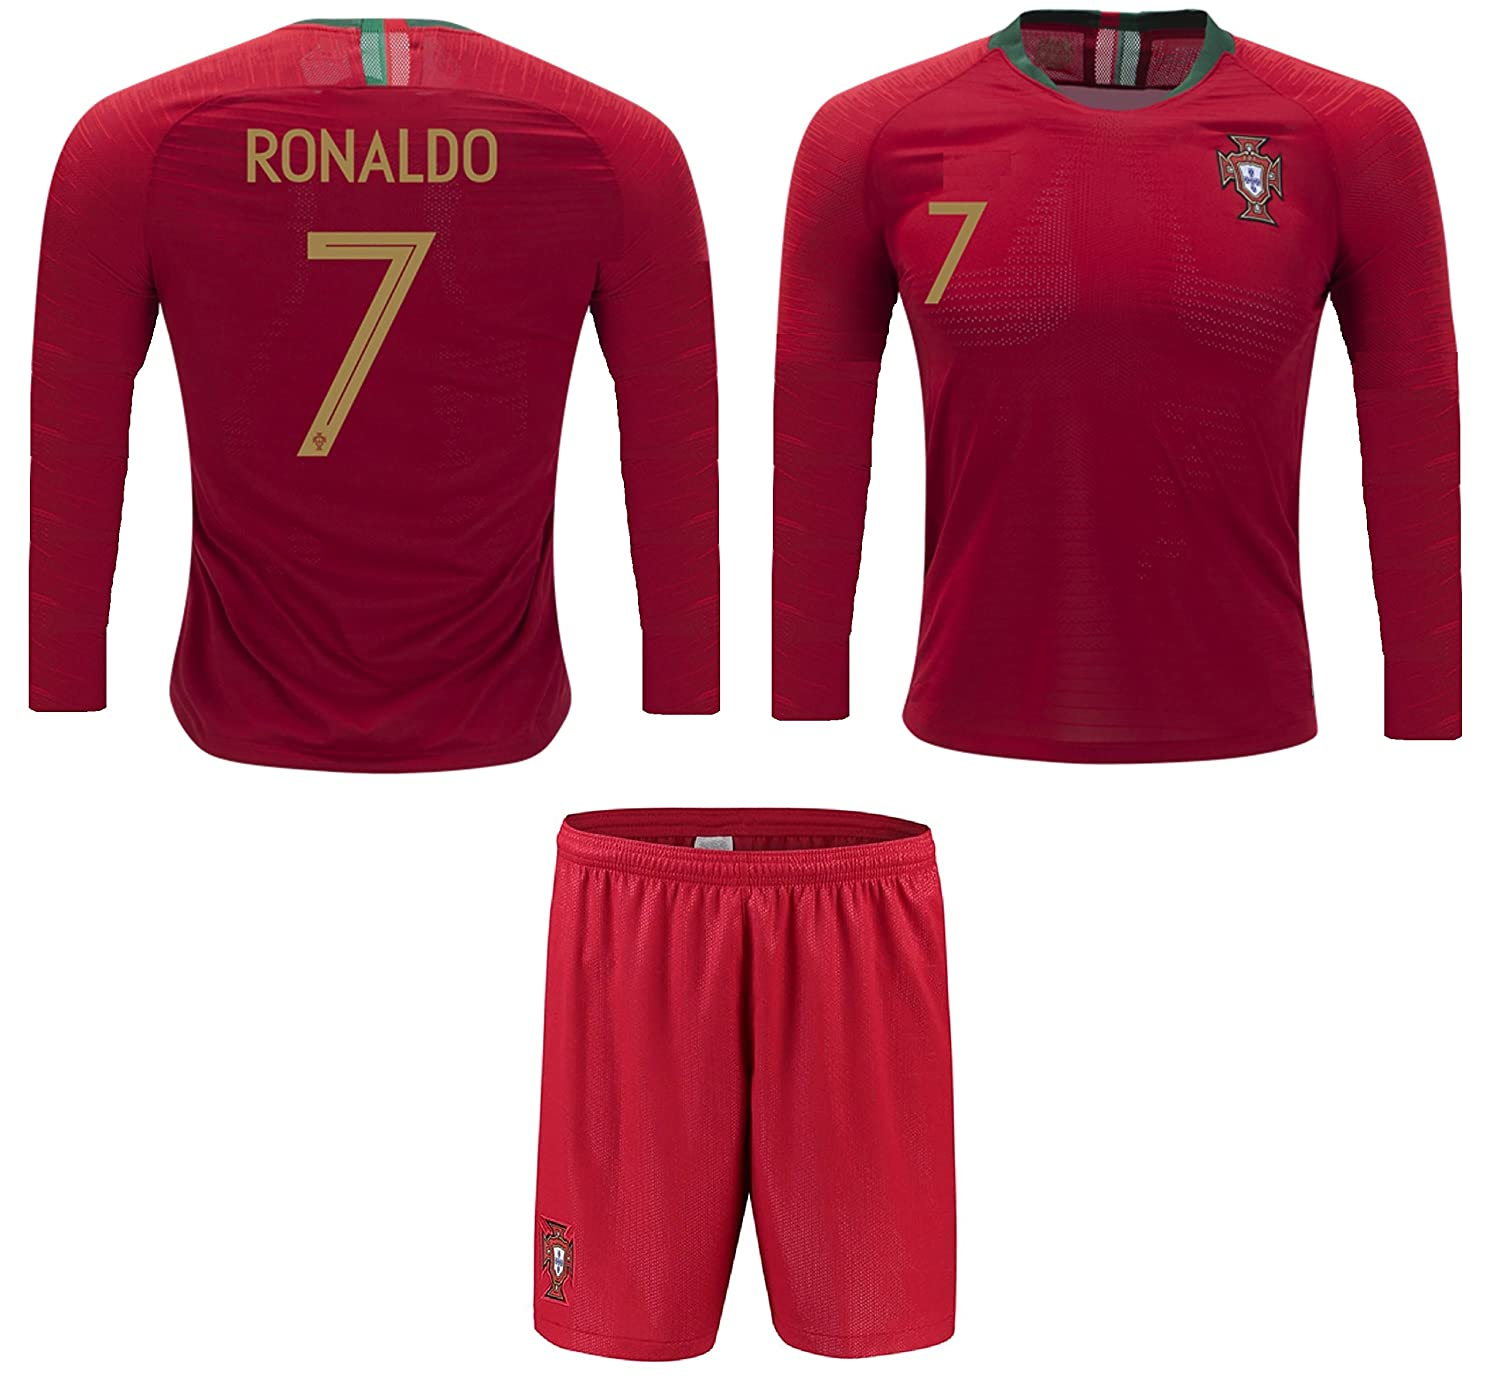 c79f9d2cf28 Amazon.com : Portugal Cristiano Ronaldo #7 Soccer Jersey and Shorts Kids  Youth Sizes Home Football World Cup Premium Gift : Sports & Outdoors